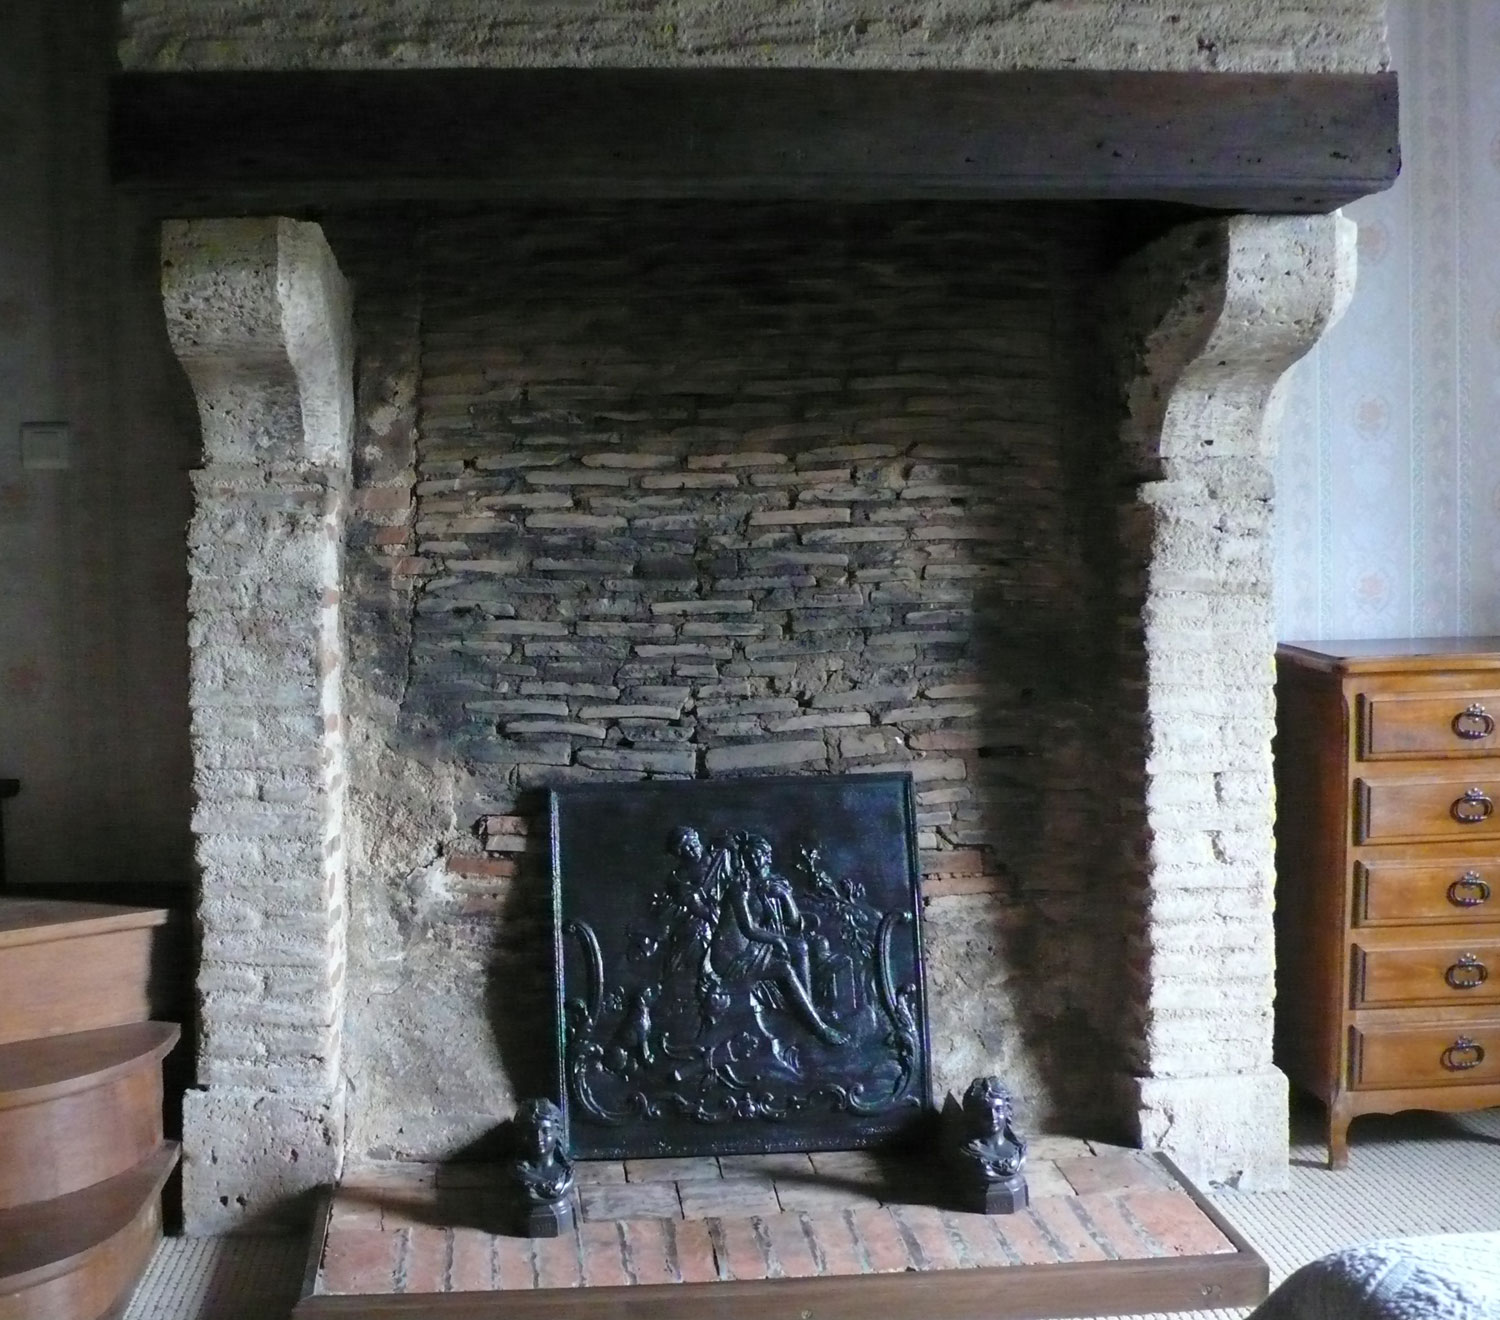 The Fireplace Operation